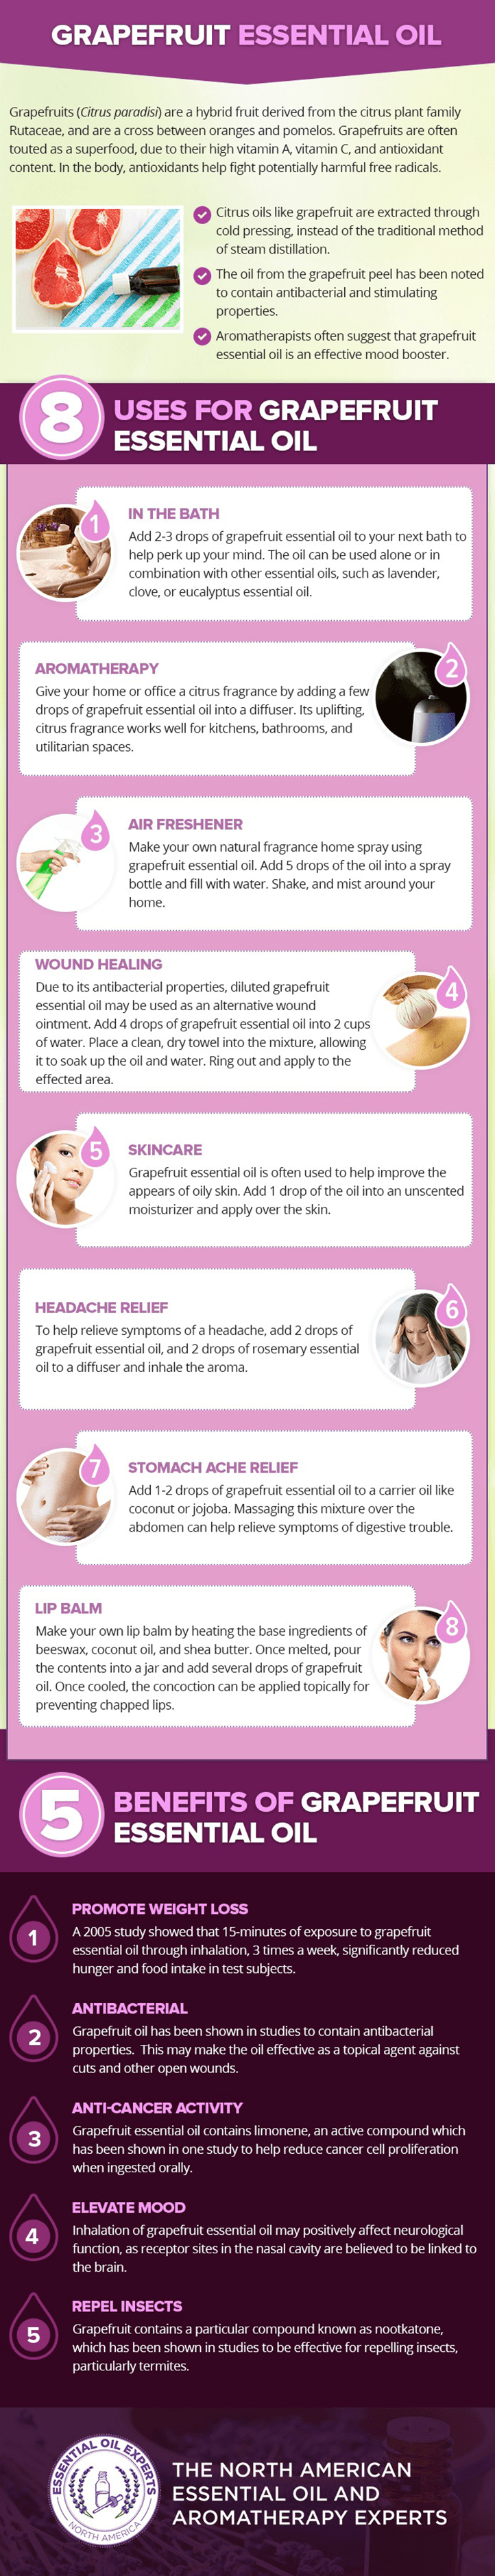 grapefruit essential oil uses – what is grapefruit essential oil good for